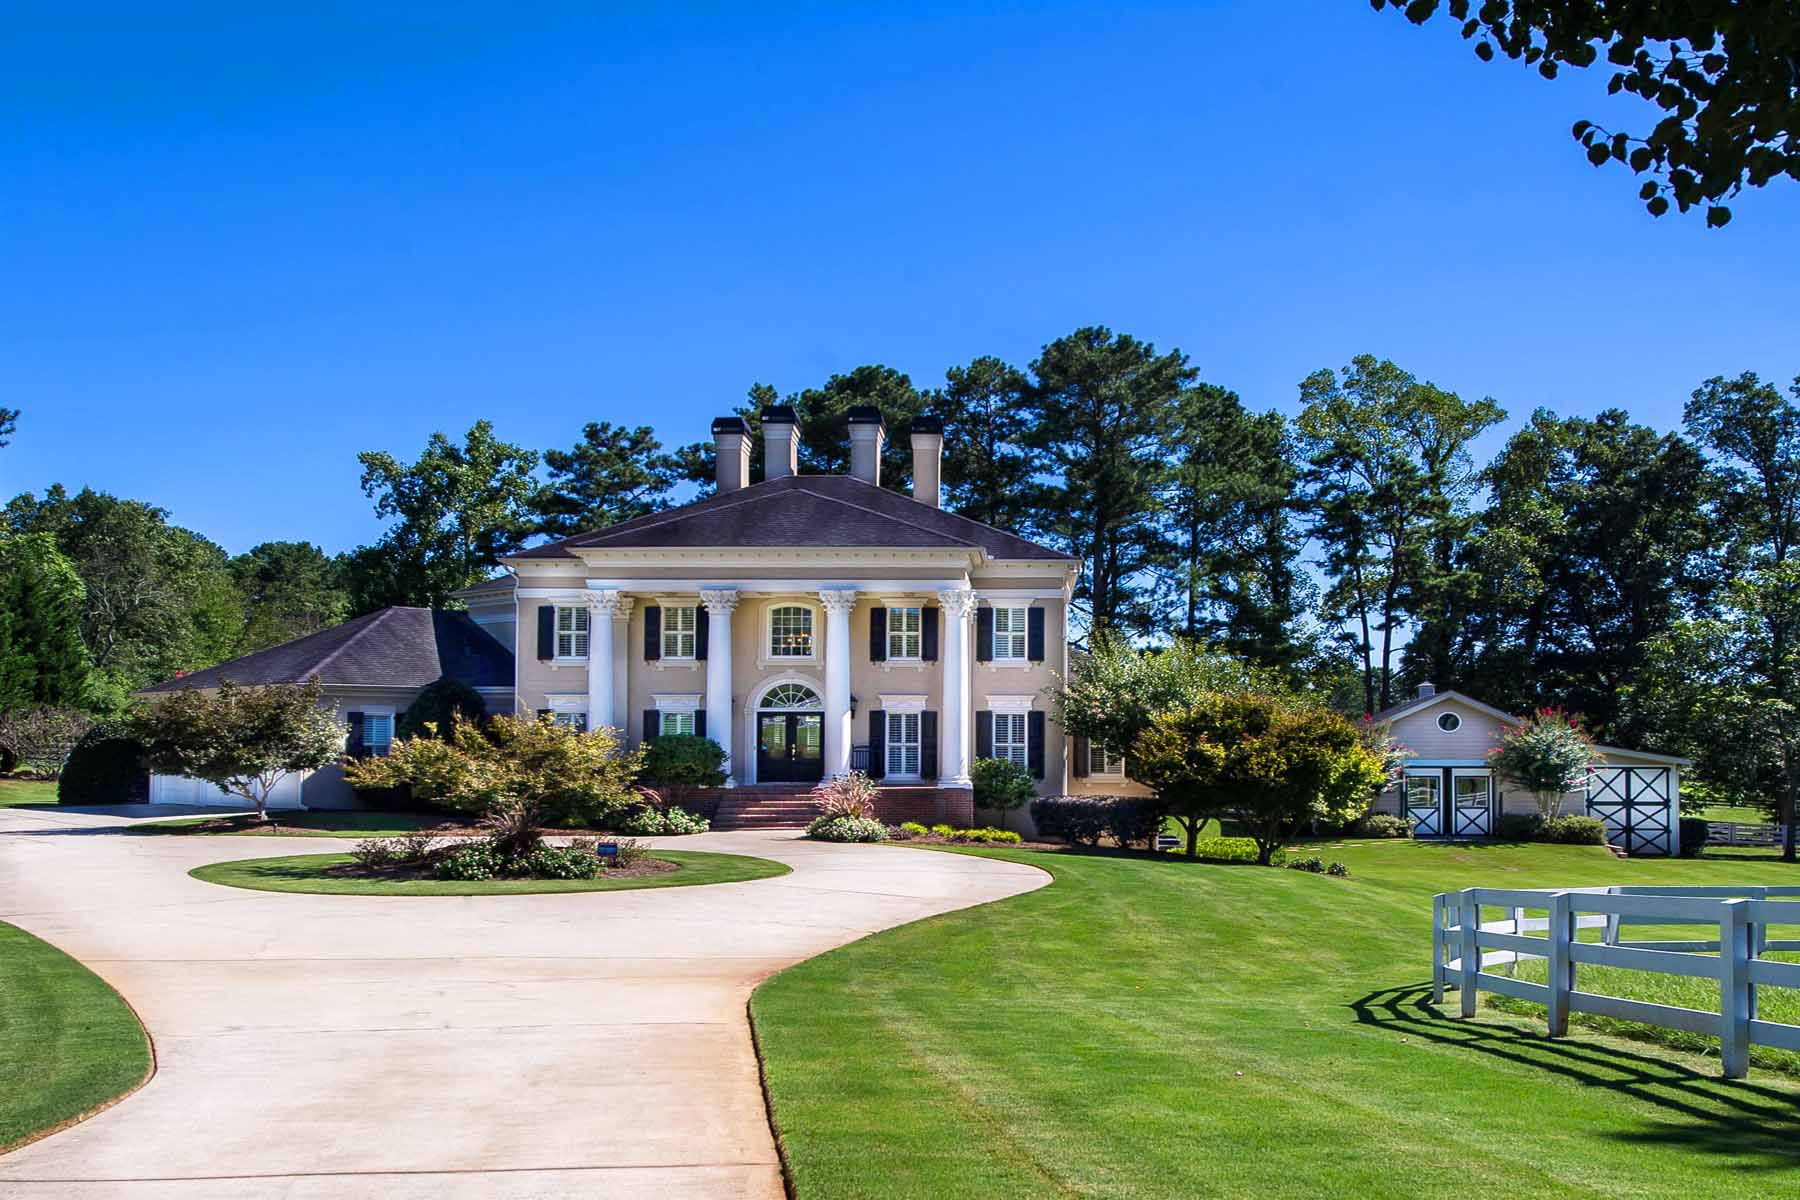 Single Family Home for Sale at Exceptional Equestrian Estate in Milton 545 Tullamore Way Milton, Georgia, 30004 United States